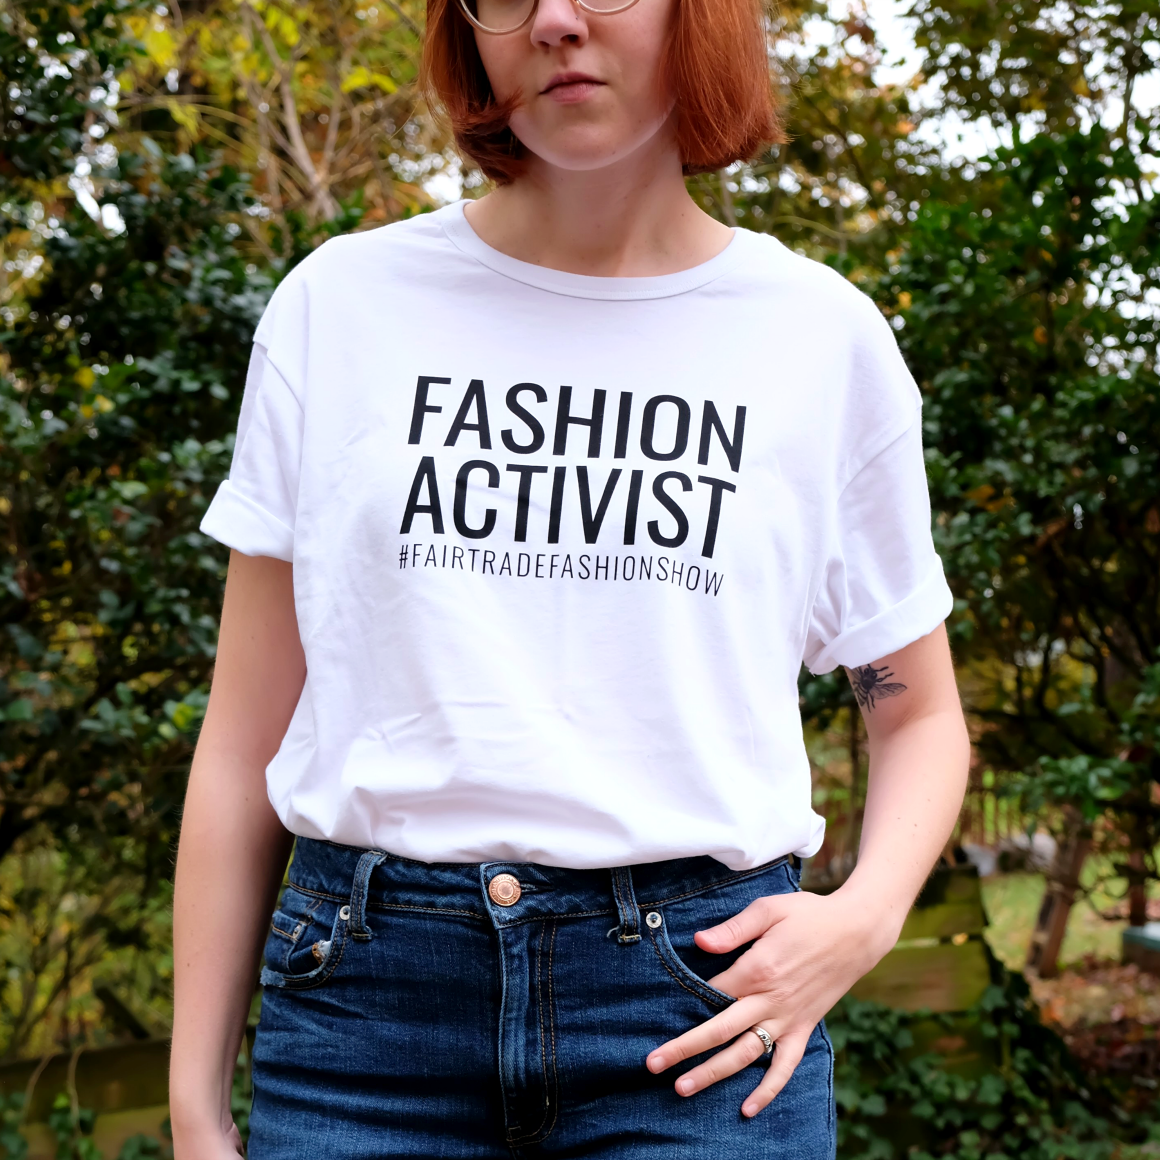 fashion activist - fair trade fashion show